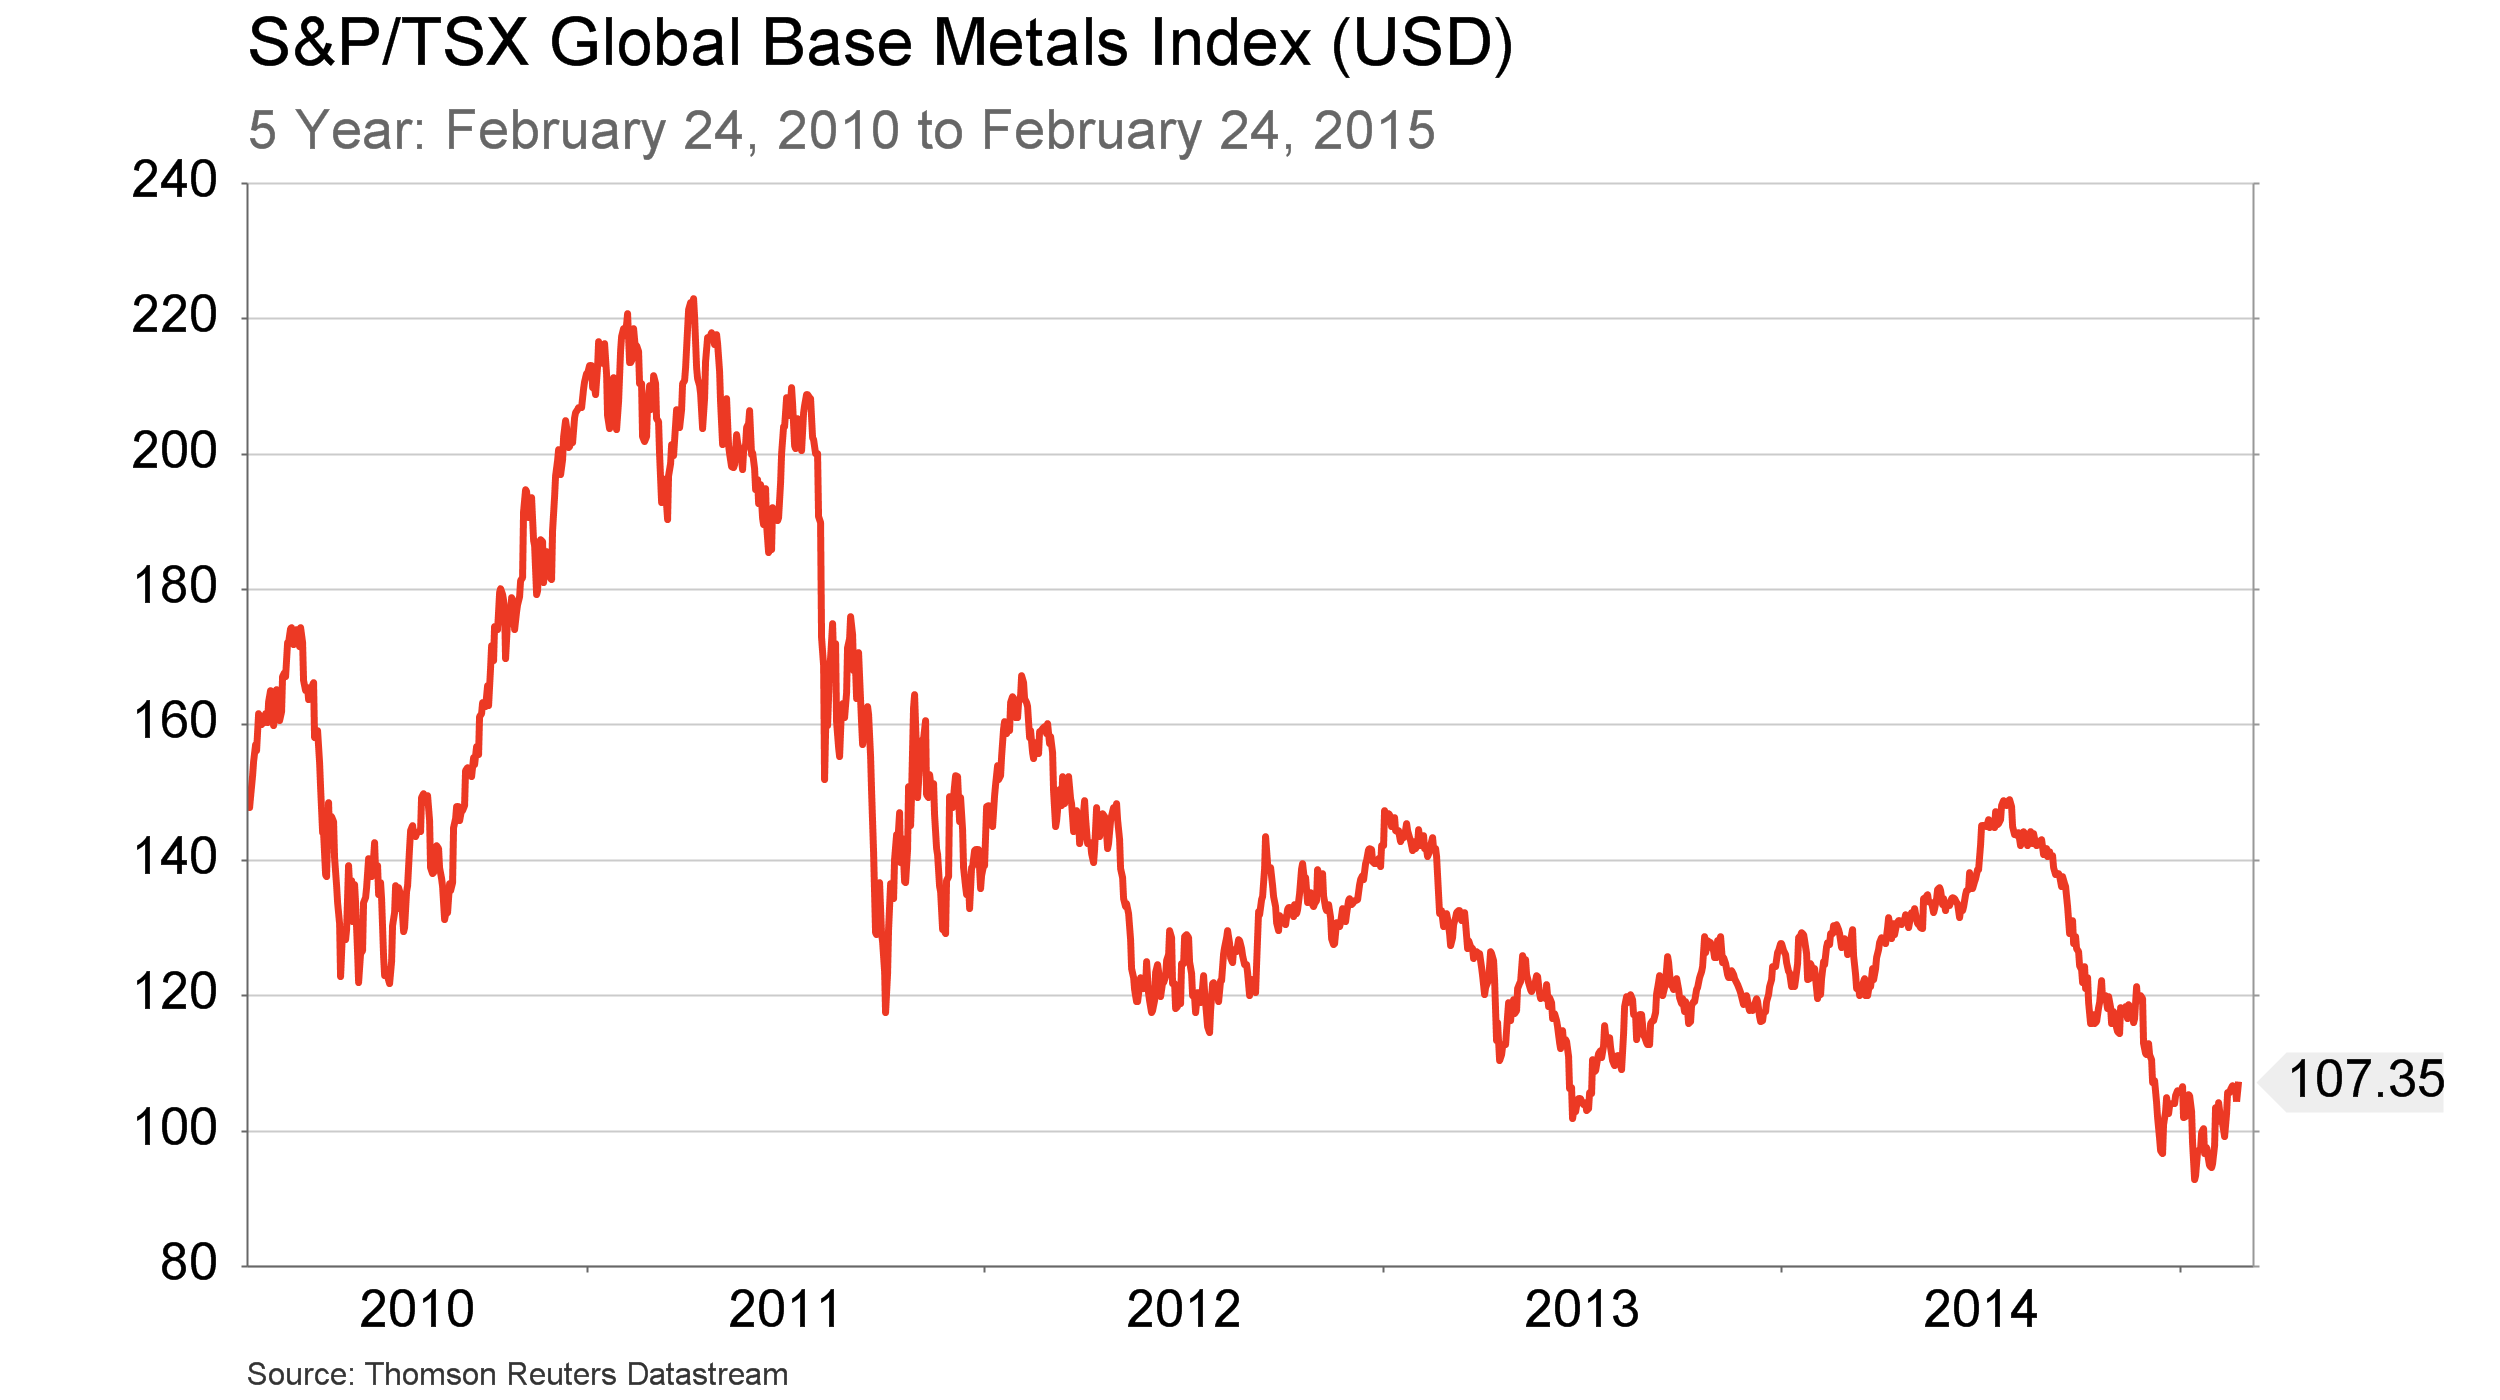 Feb.27 - TSX Global Base Metals Index